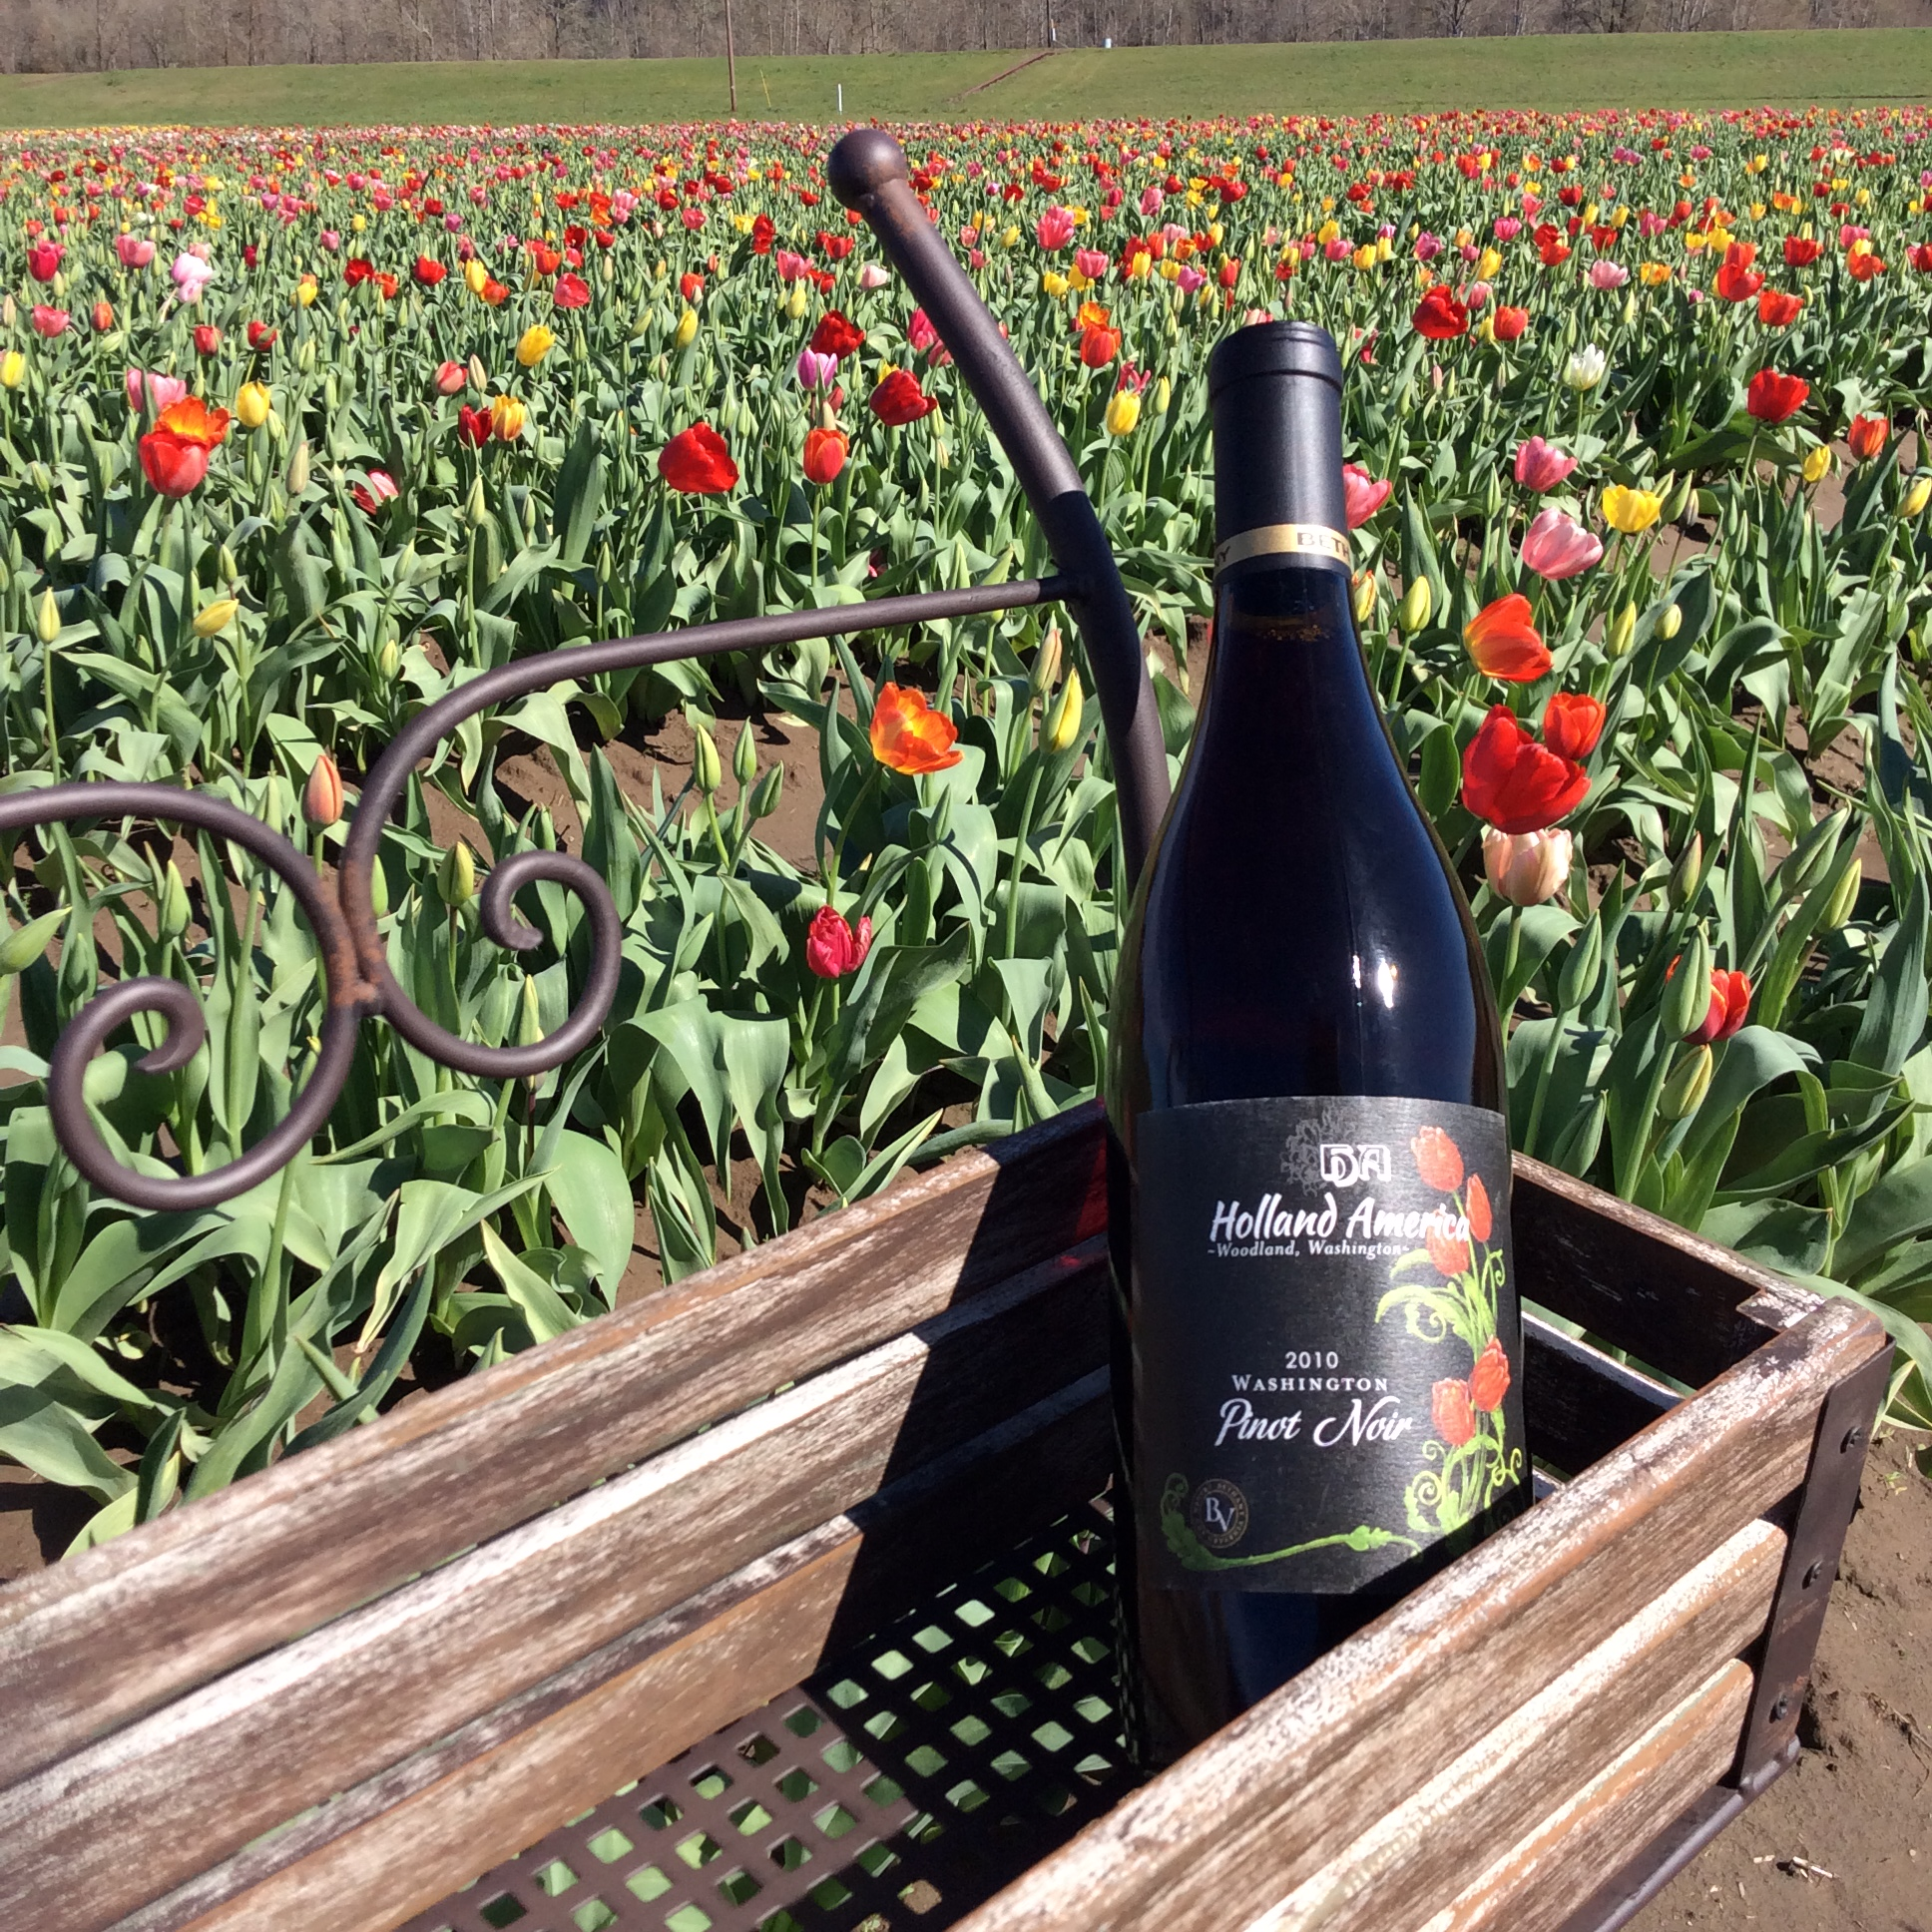 Holland America Bulb Farm's private label 2010 Pinot Noir was crafted by Bethany Vineyard & Winery owner, Walt Houser, from 100 percent estate-grown grapes. Photo courtesy of Holland America Bulb Farm.